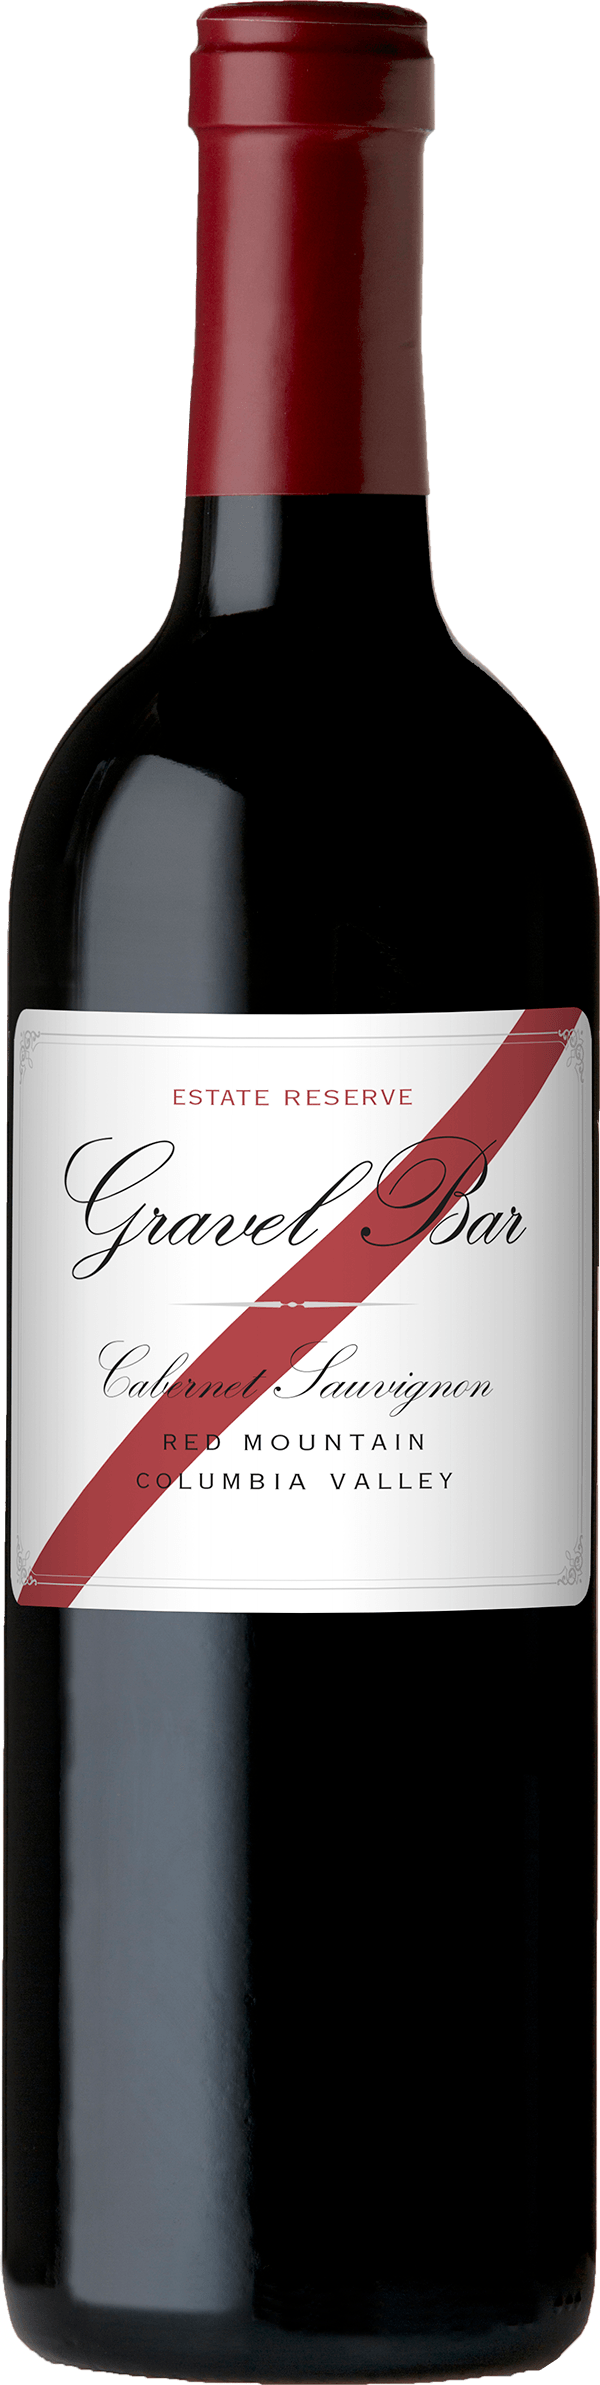 A bottle of the Cabernet Sauvignon Reserve